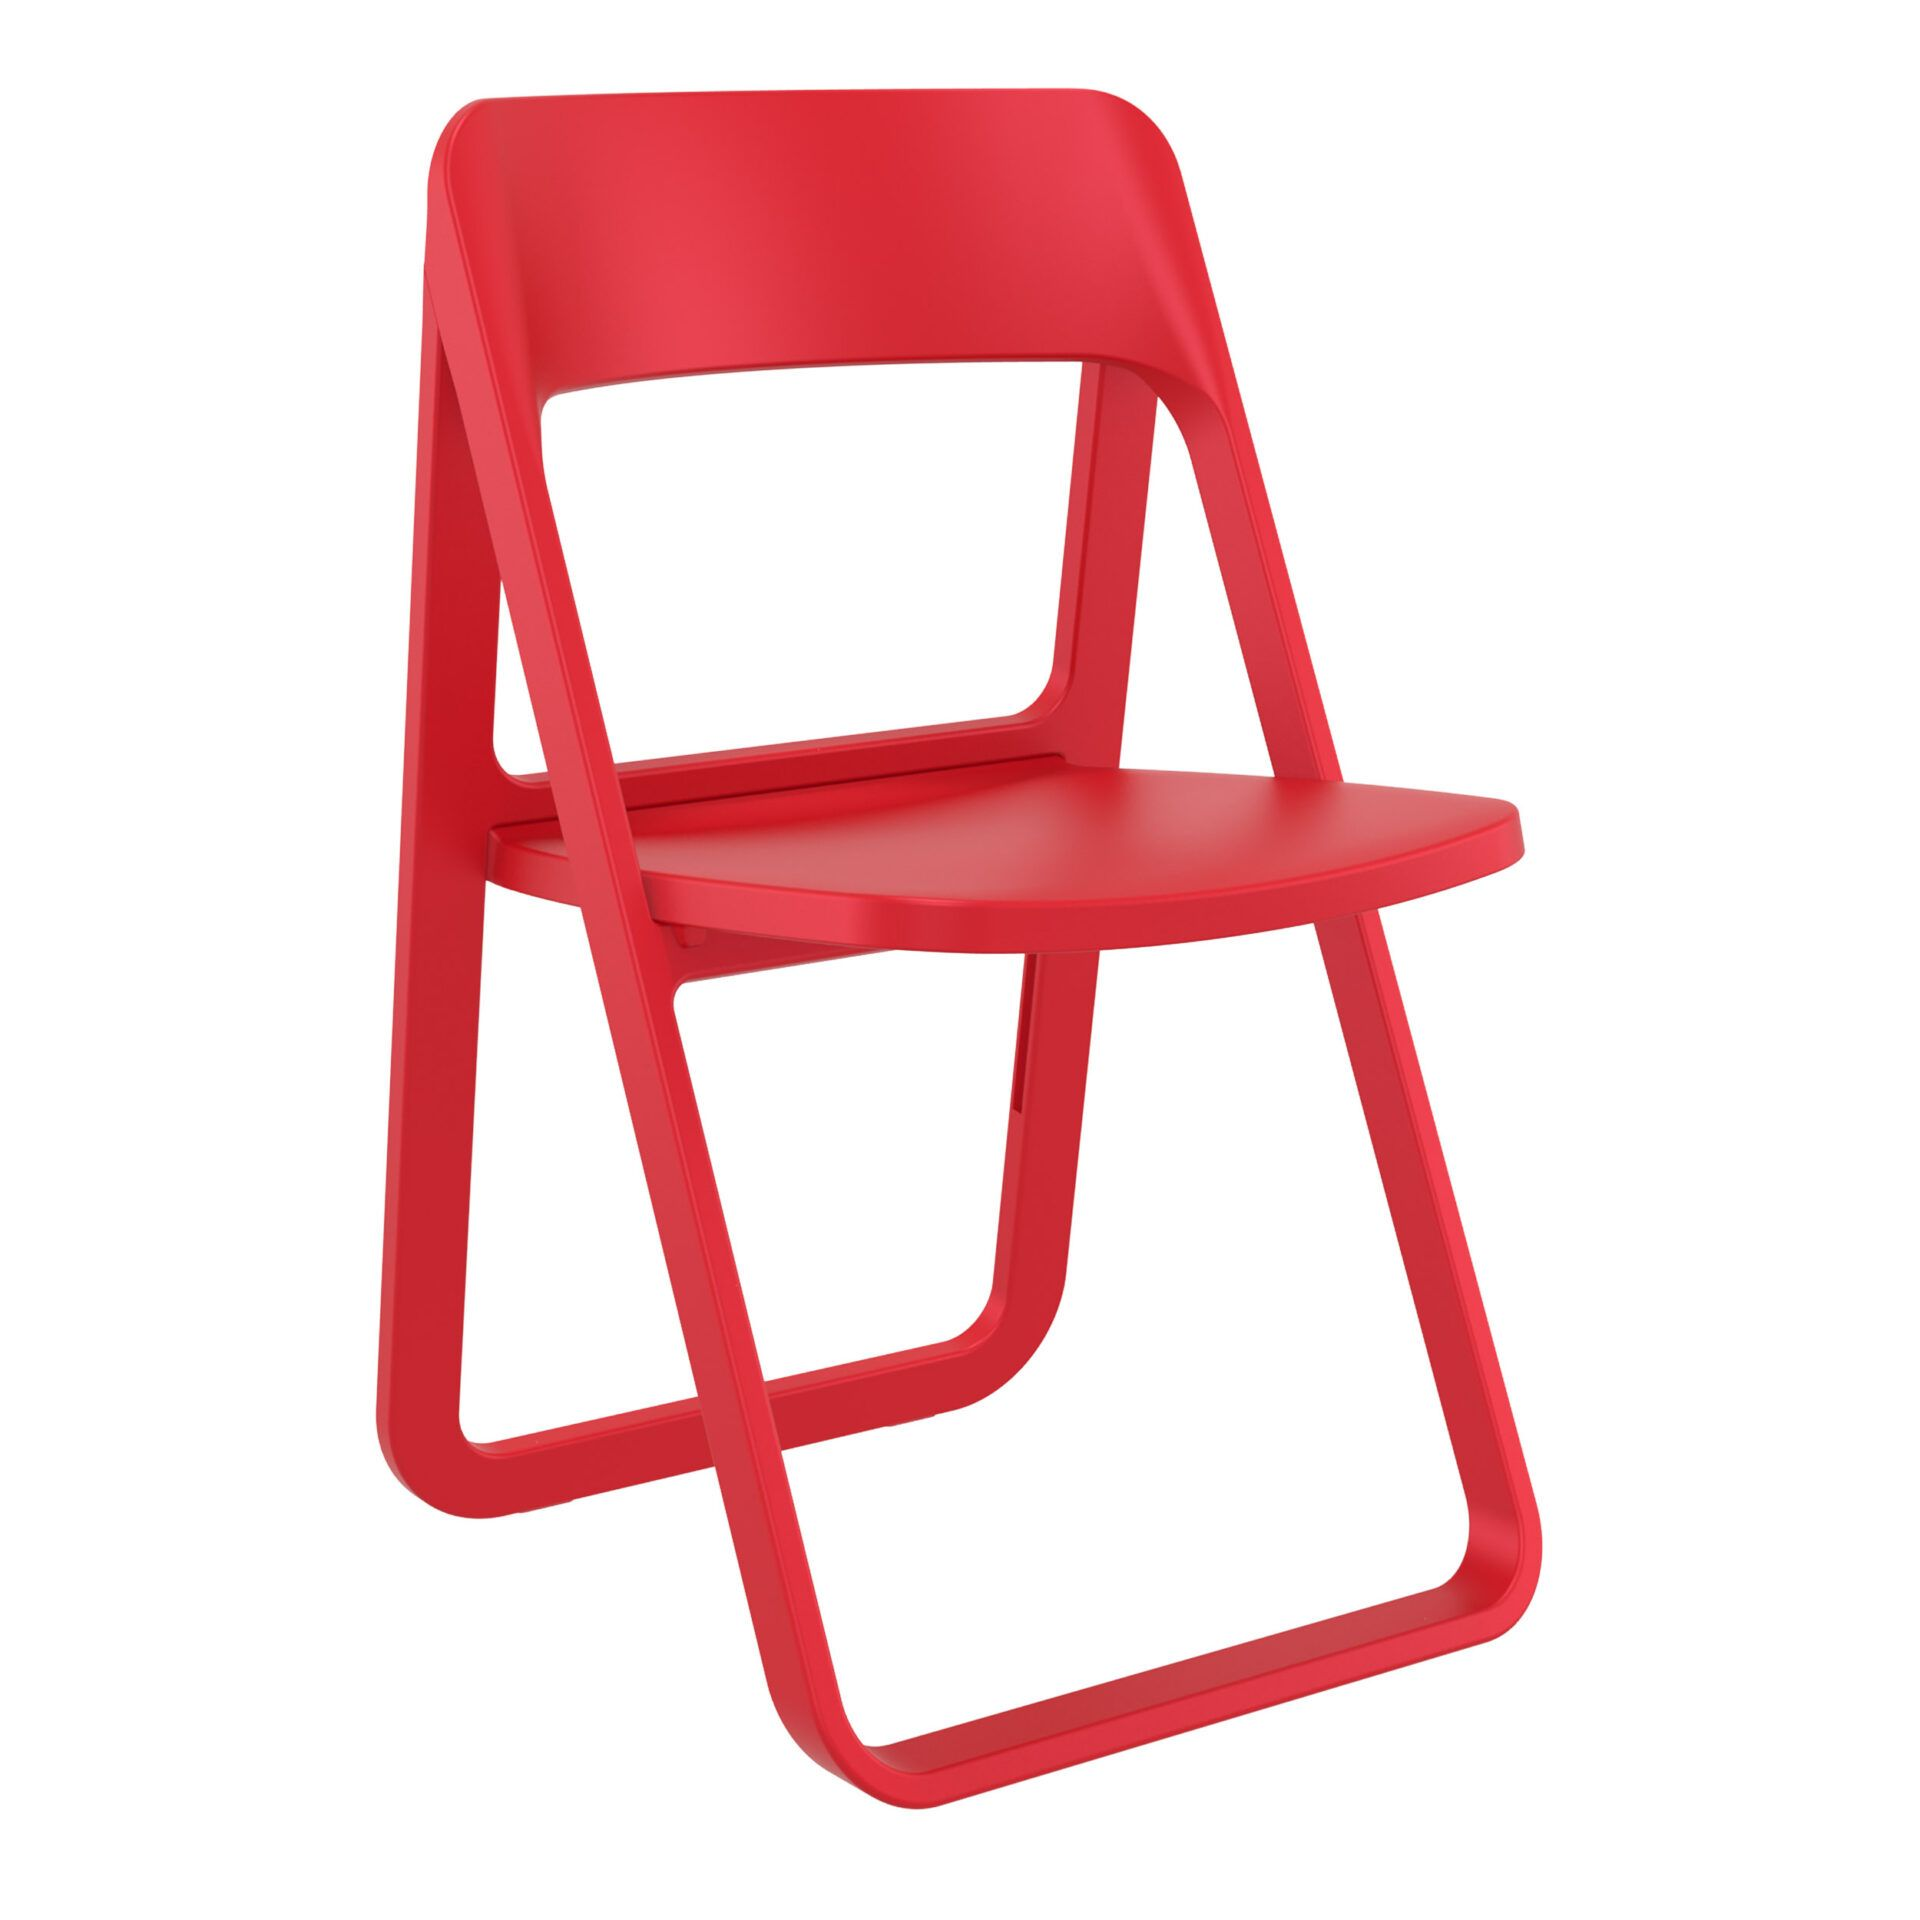 polypropylene dream folding chair red front side